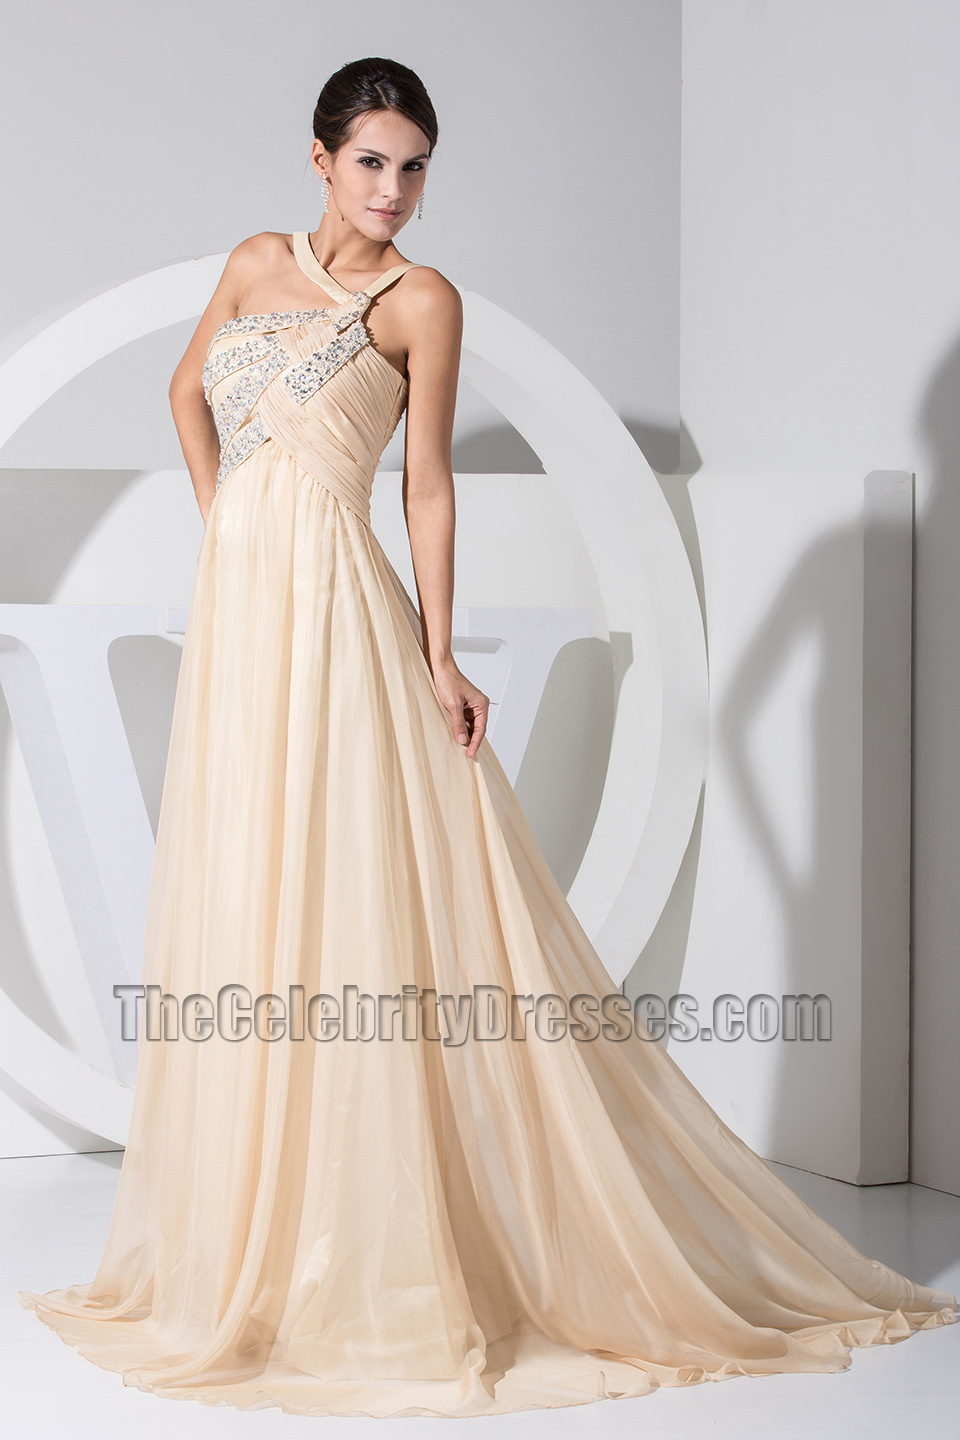 Chic Champagne Chiffon A Line Prom Dress Evening Dresses Thecelebritydresses